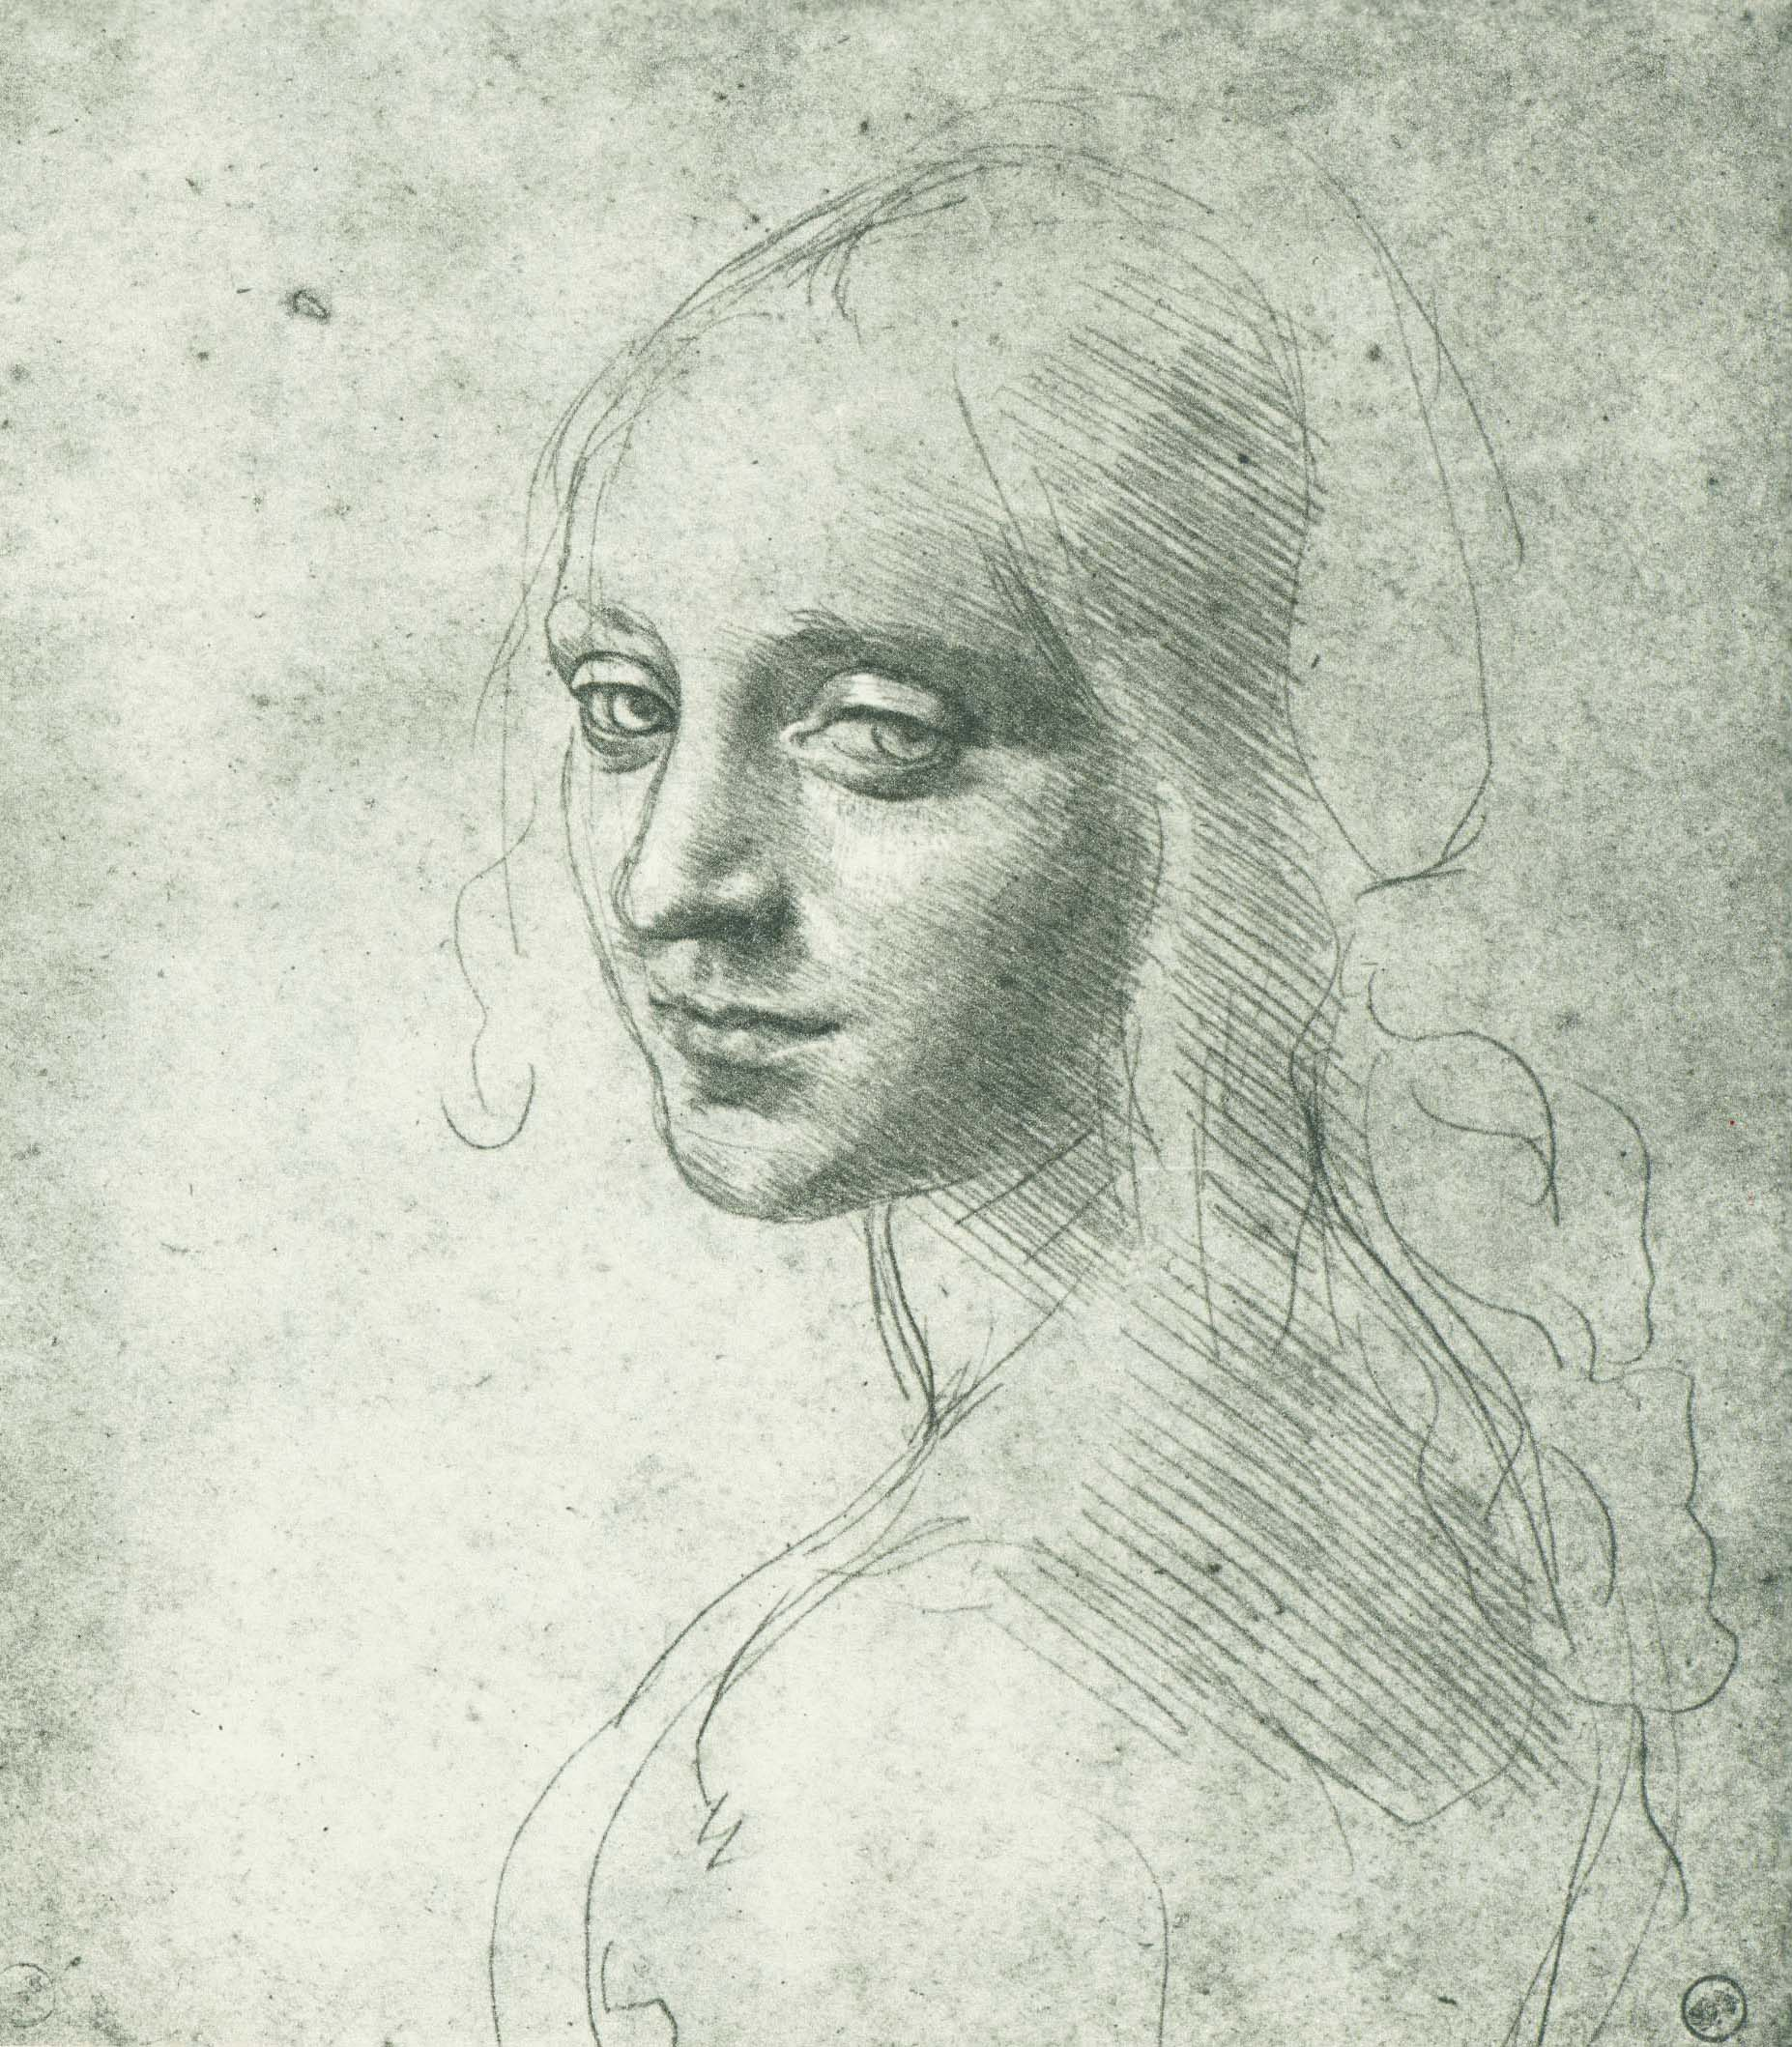 Contour Line Drawing Leonardo Da Vinci : Could leonardo da vinci draw really artamaze by